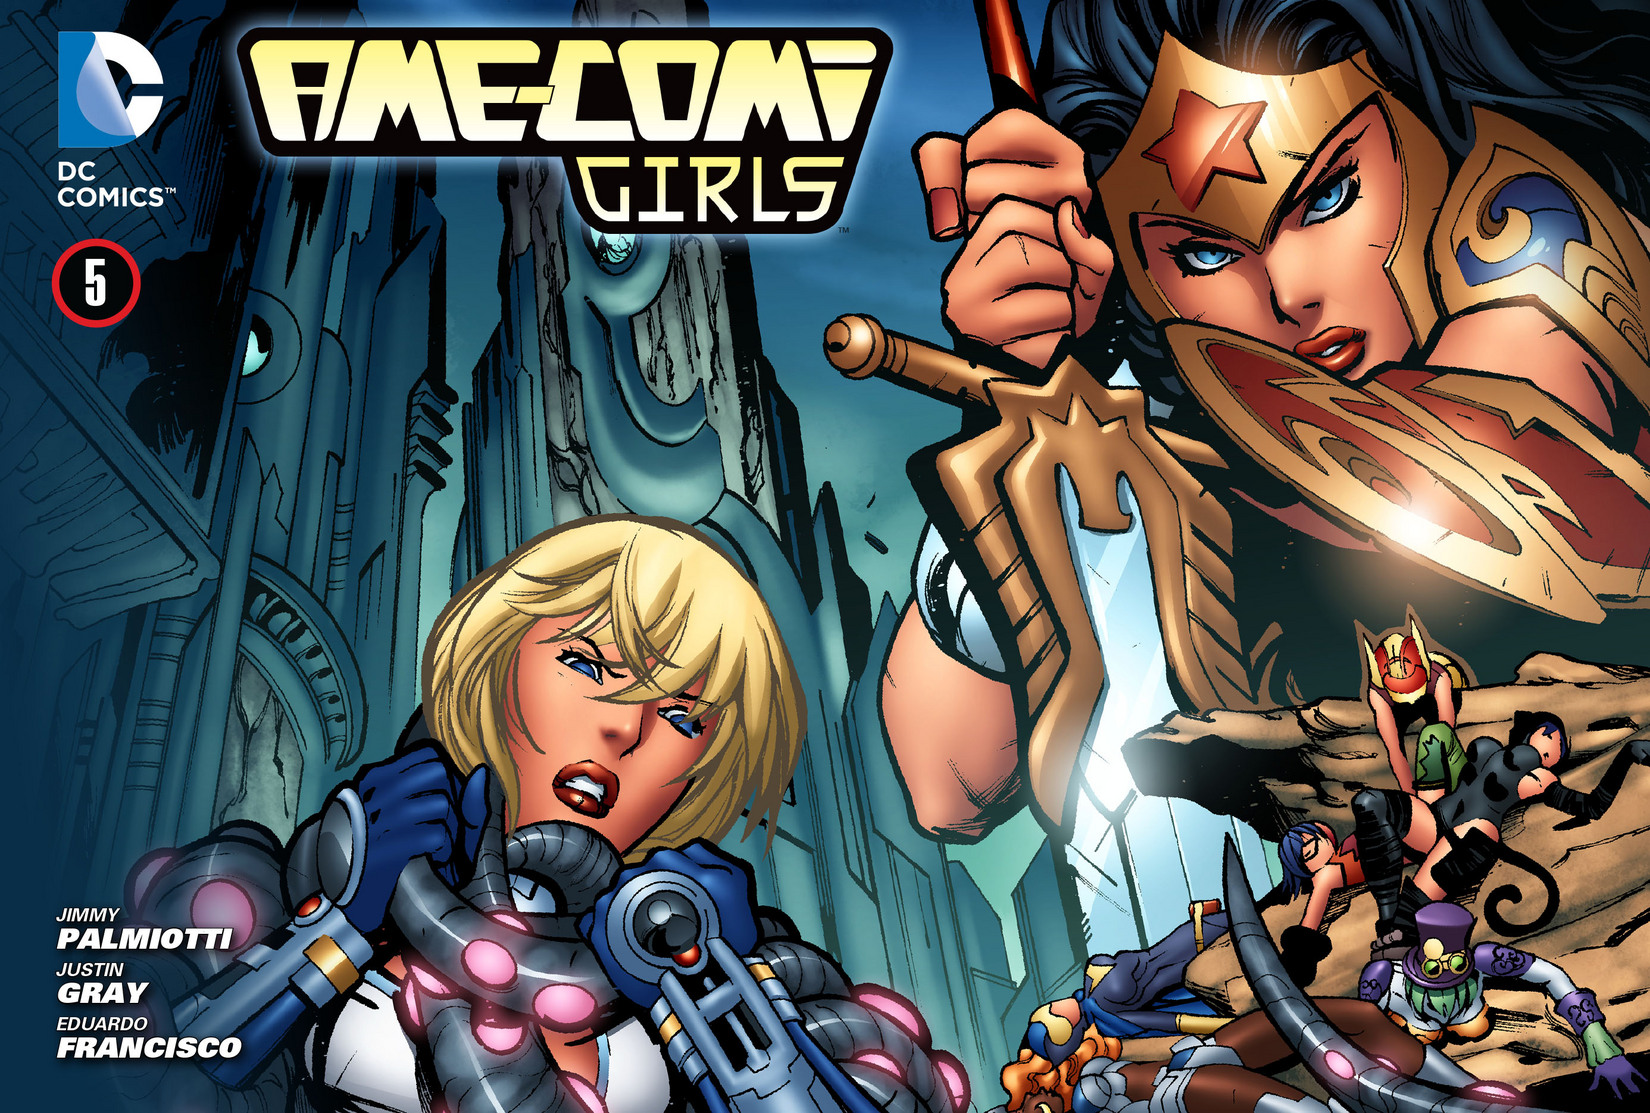 Read online Ame-Comi Girls comic -  Issue #5 - 1